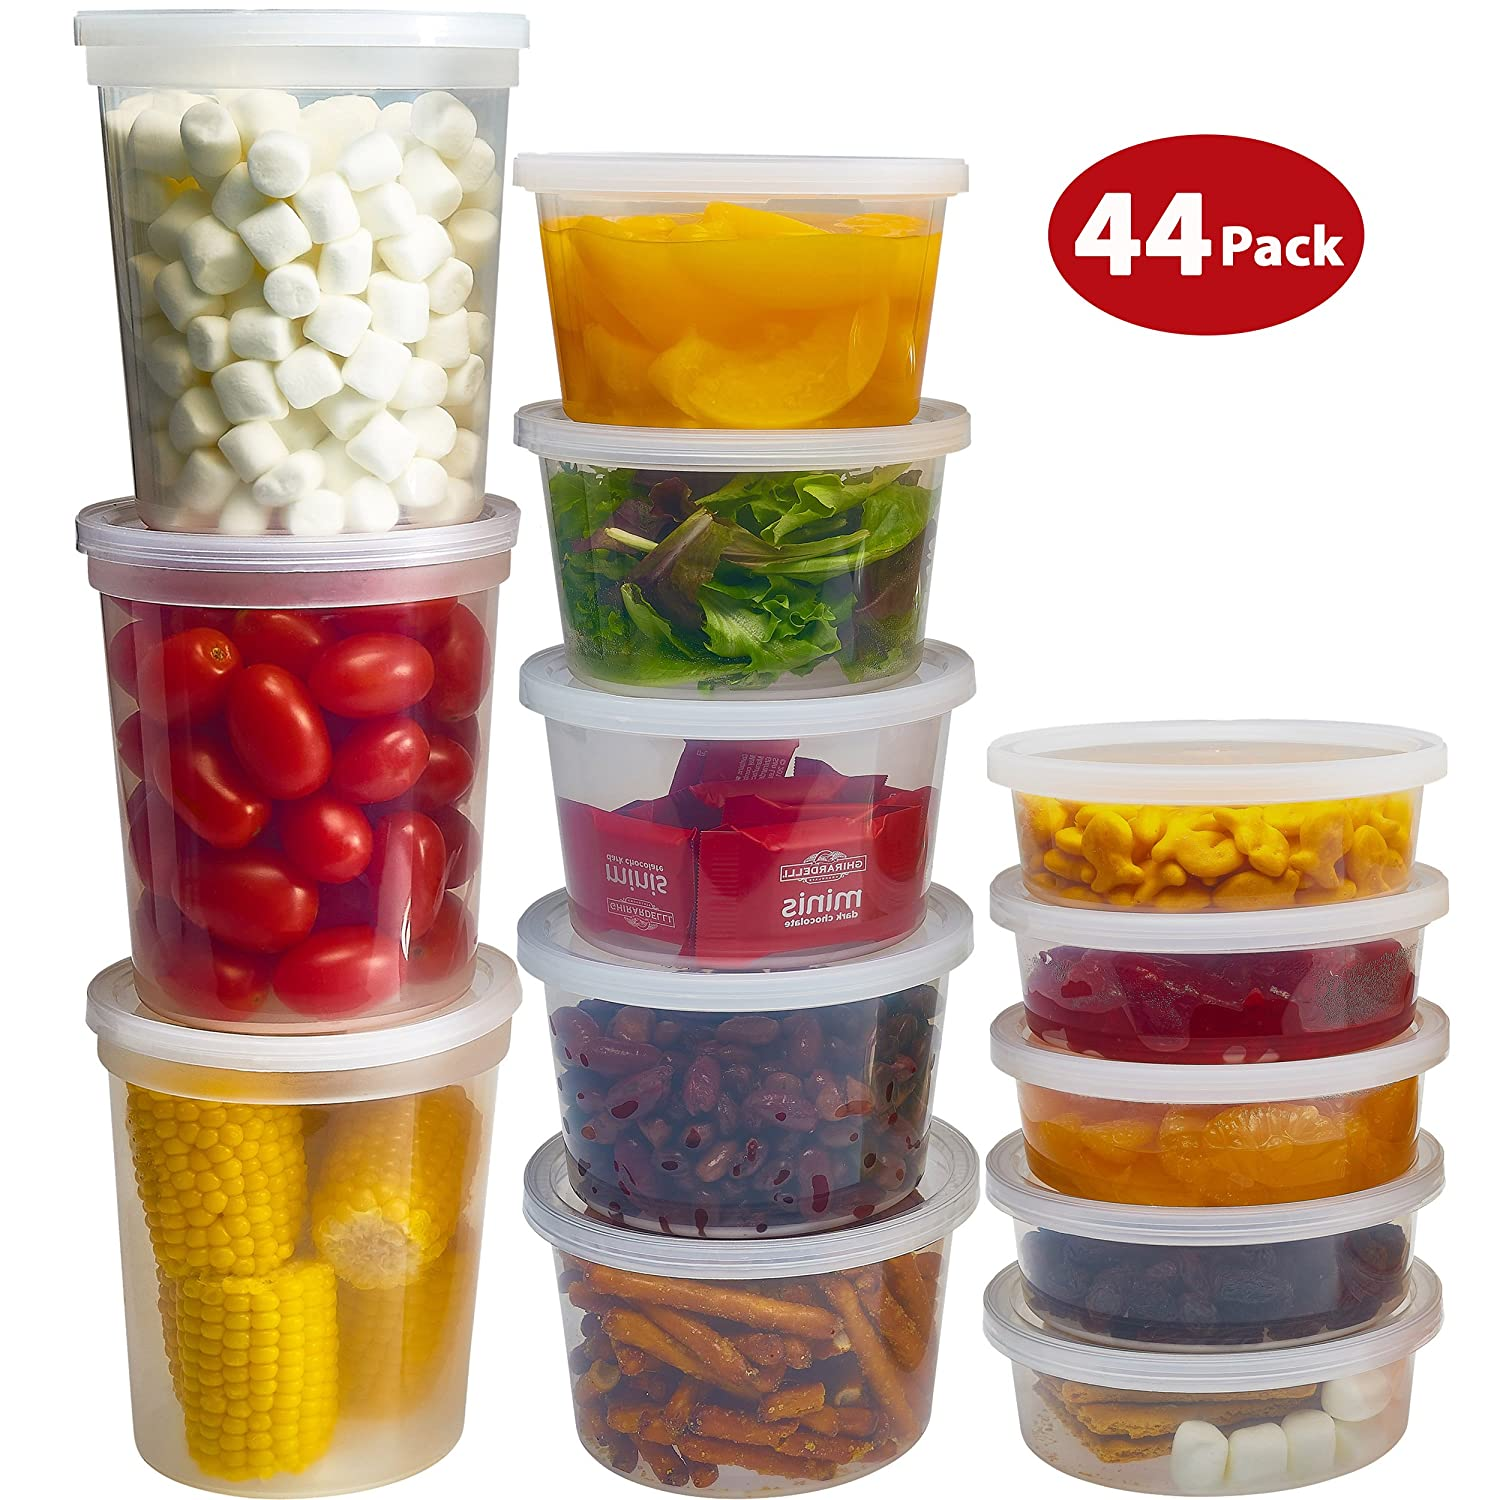 Dura Home Food Storage Containers With Lids 8oz, 16oz, 32oz Freezer Deli Cups Combo Pack, 44 Sets Bpa Free Leakproof Round Clear Takeout Container Meal Prep   Microwavable, Reusable, Dishwasher Safe by Dura Home